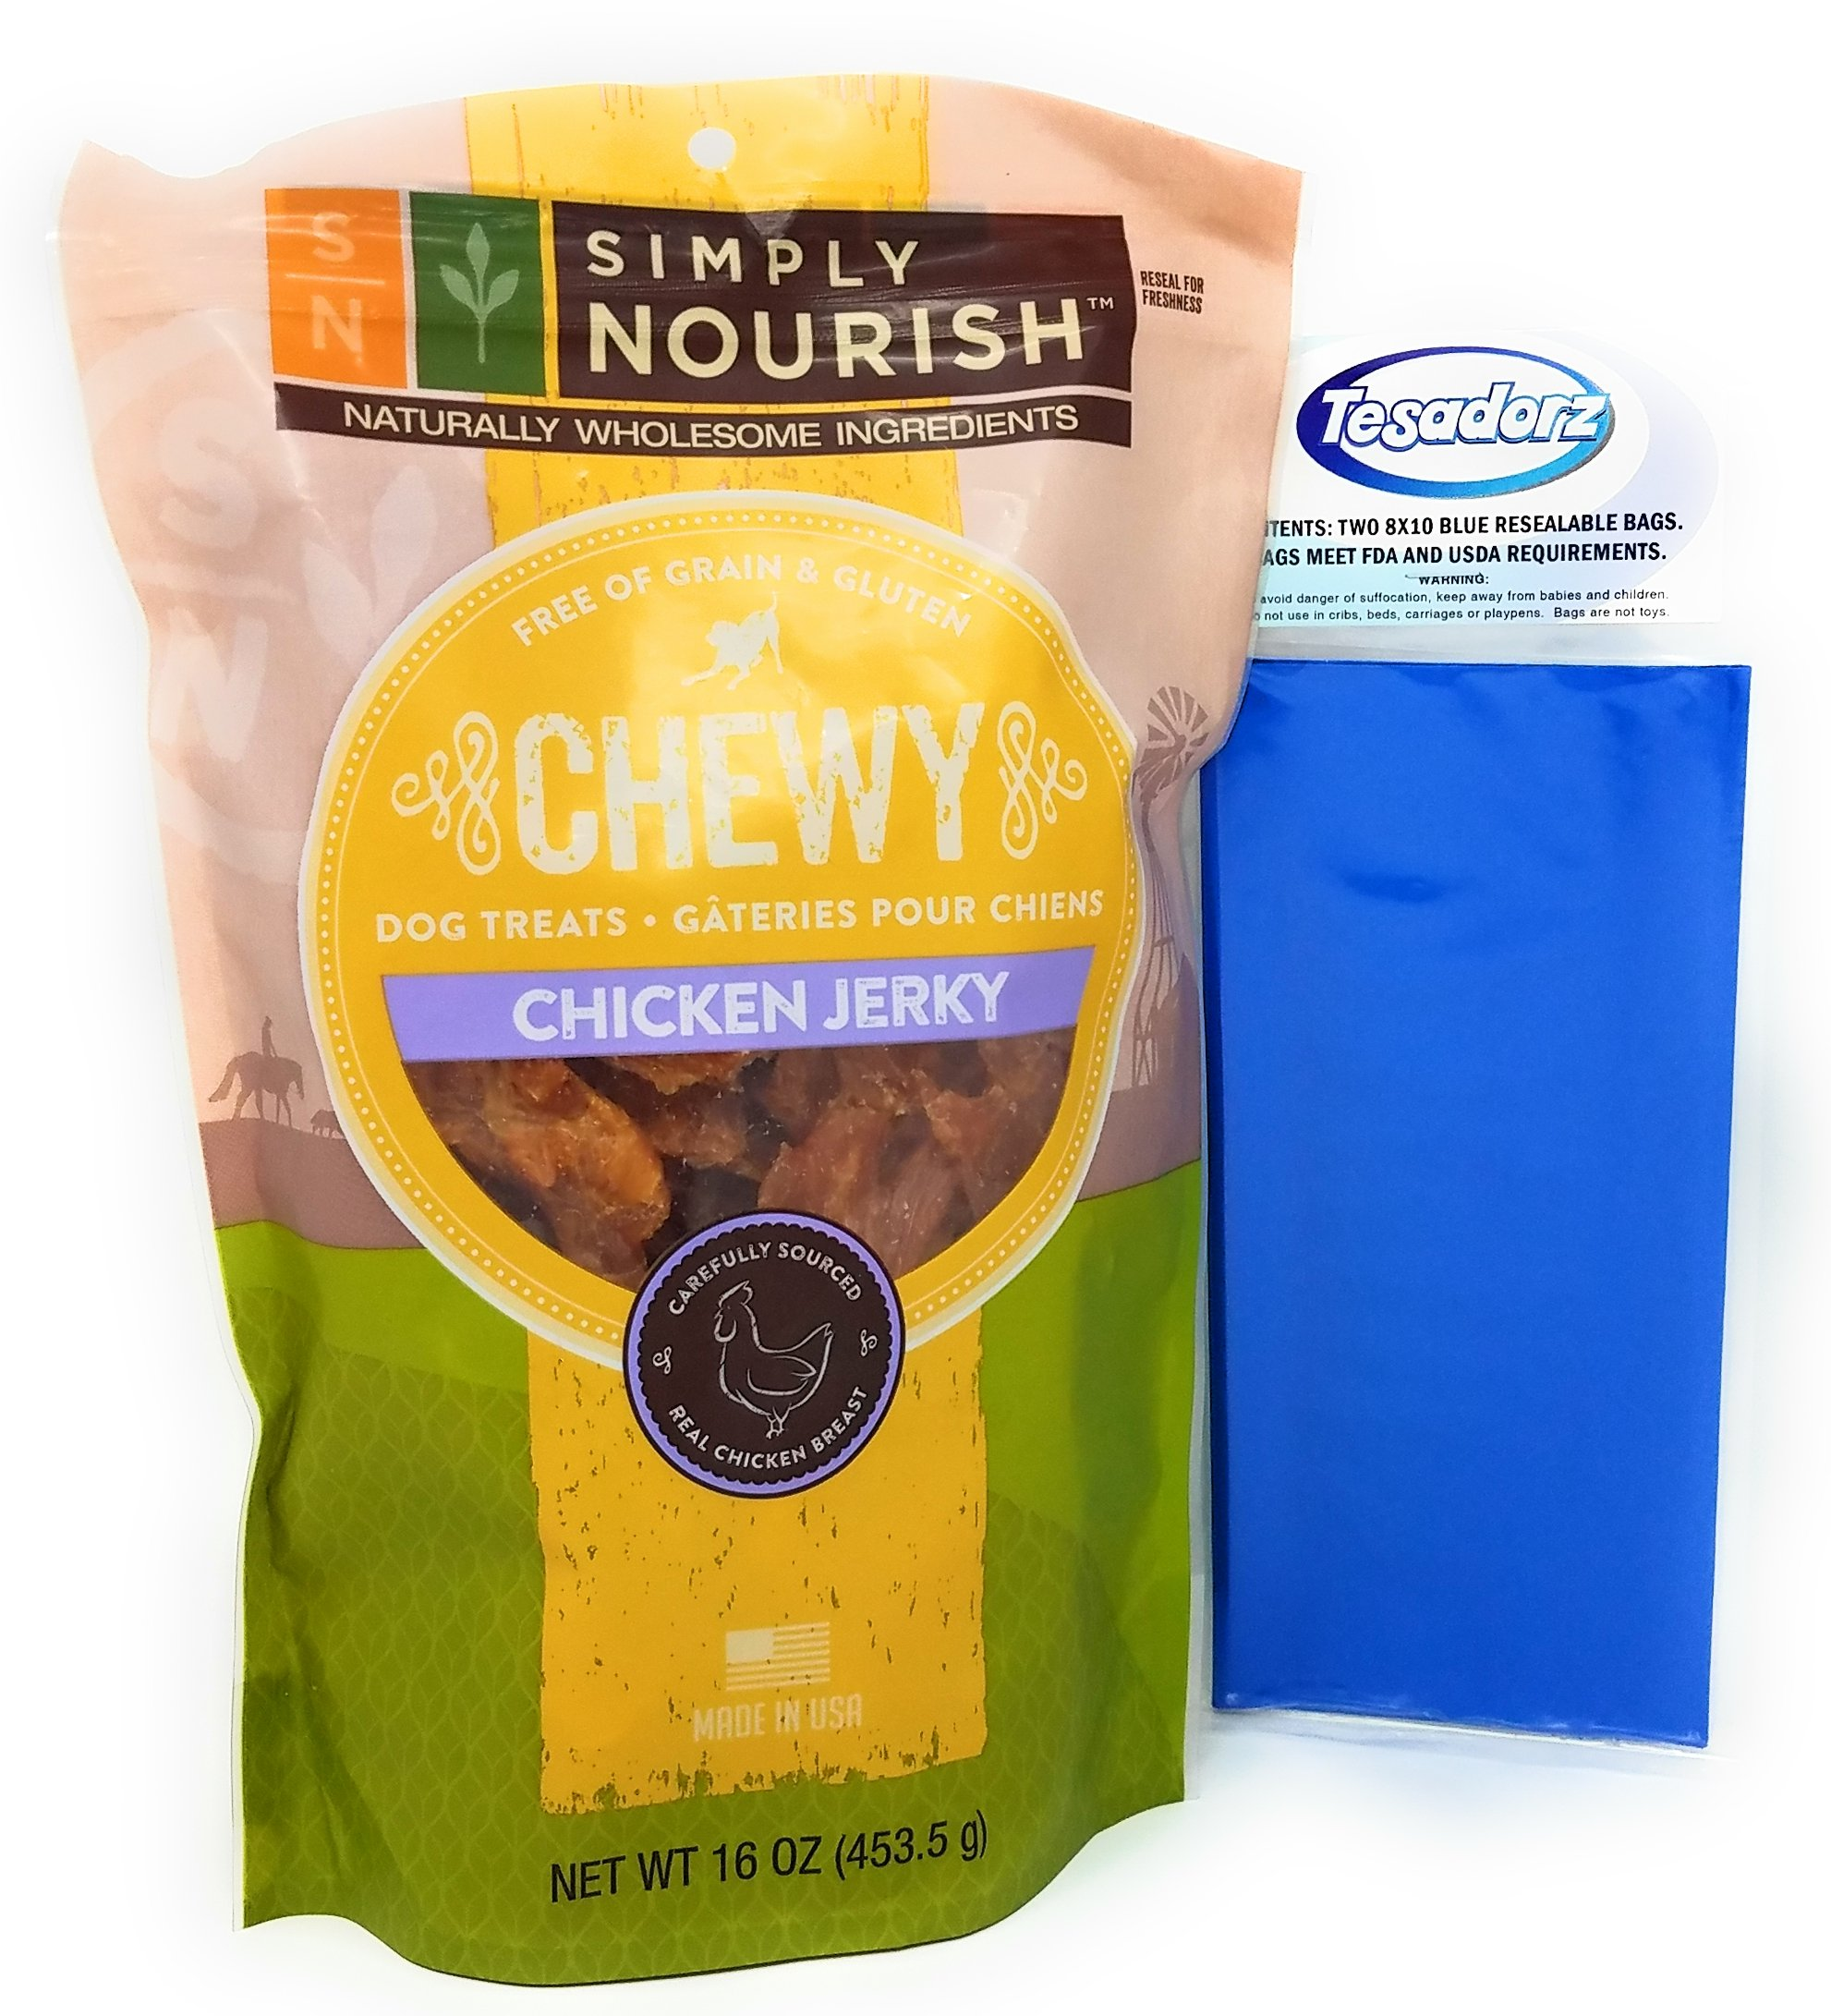 Simply Nourish Chewy Chicken Jerky Dog Treats 16 Ounces and Tesadorz Resealable Bags